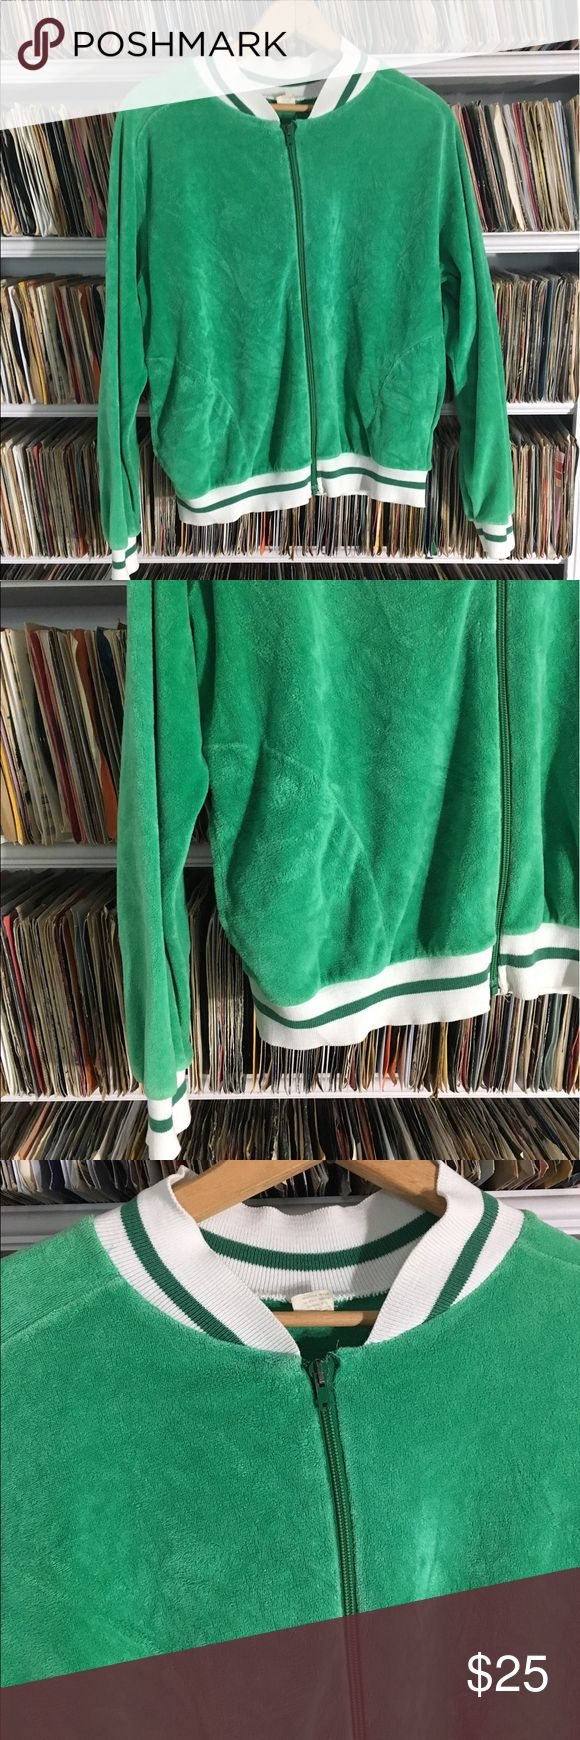 Vintage track suit tennis velour jacket This is an awesome simple track suit jacket. It's the ultimate accessory with a pair of jeans or cute shorts on a cool day. It's a size large. It's in good condition. Please understand with all vintage clothes small imperfections may exist that were not initially detected. Vintage Jackets & Coats